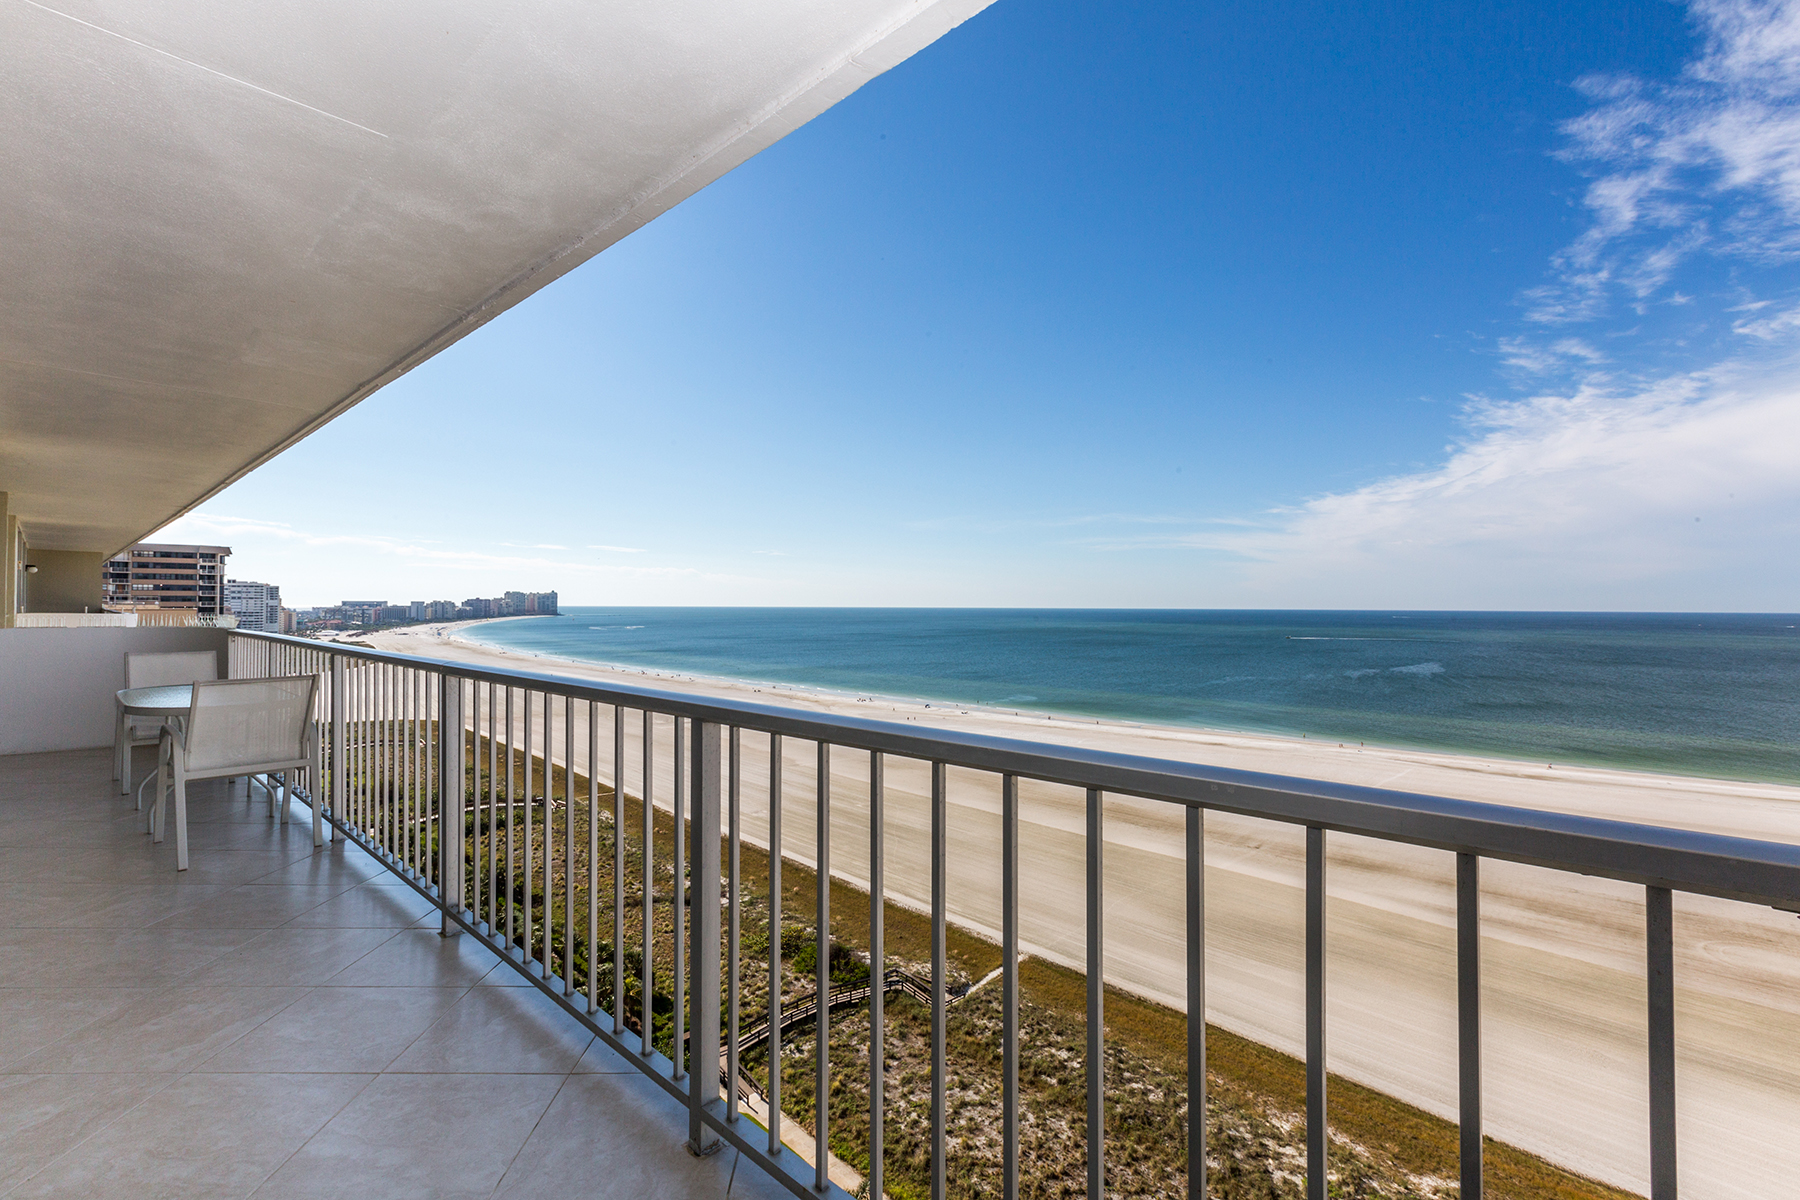 Condominium for Sale at MARCO ISLAND 140 Seaview Ct 1802N, Marco Island, Florida 34145 United States